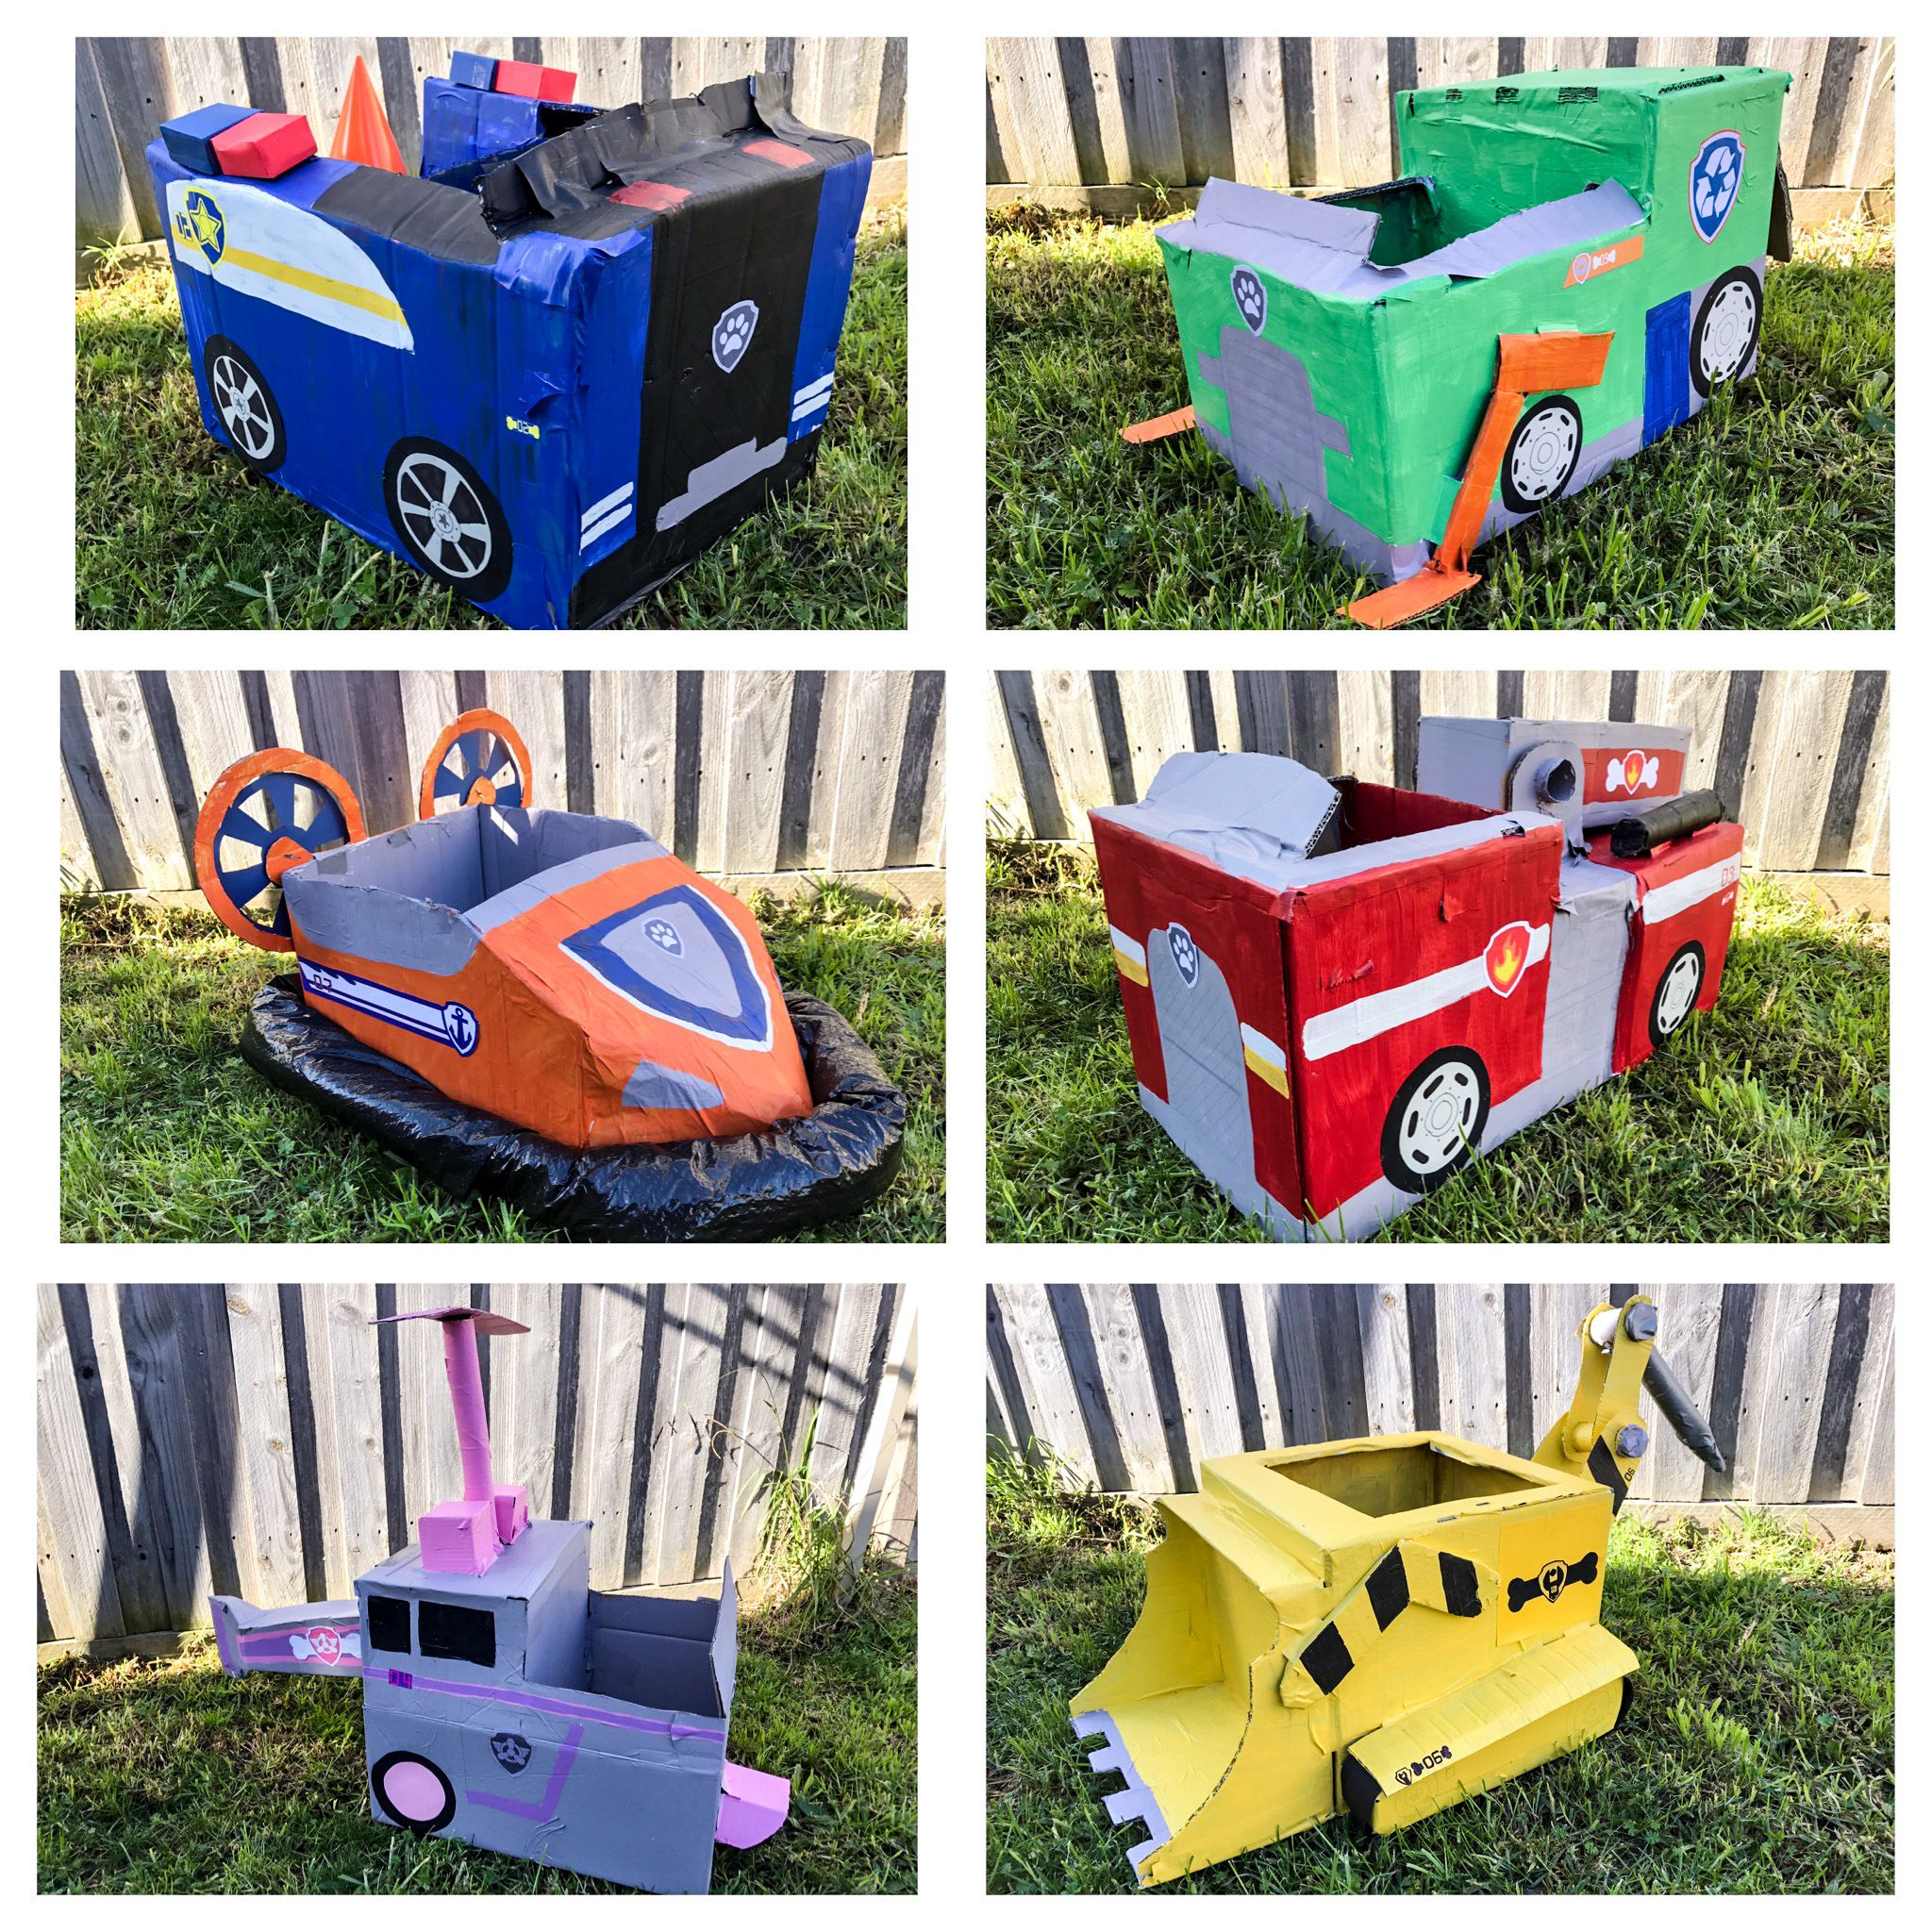 Paw Patrol Party Cardboard Vehicles Kids Activities Party Games